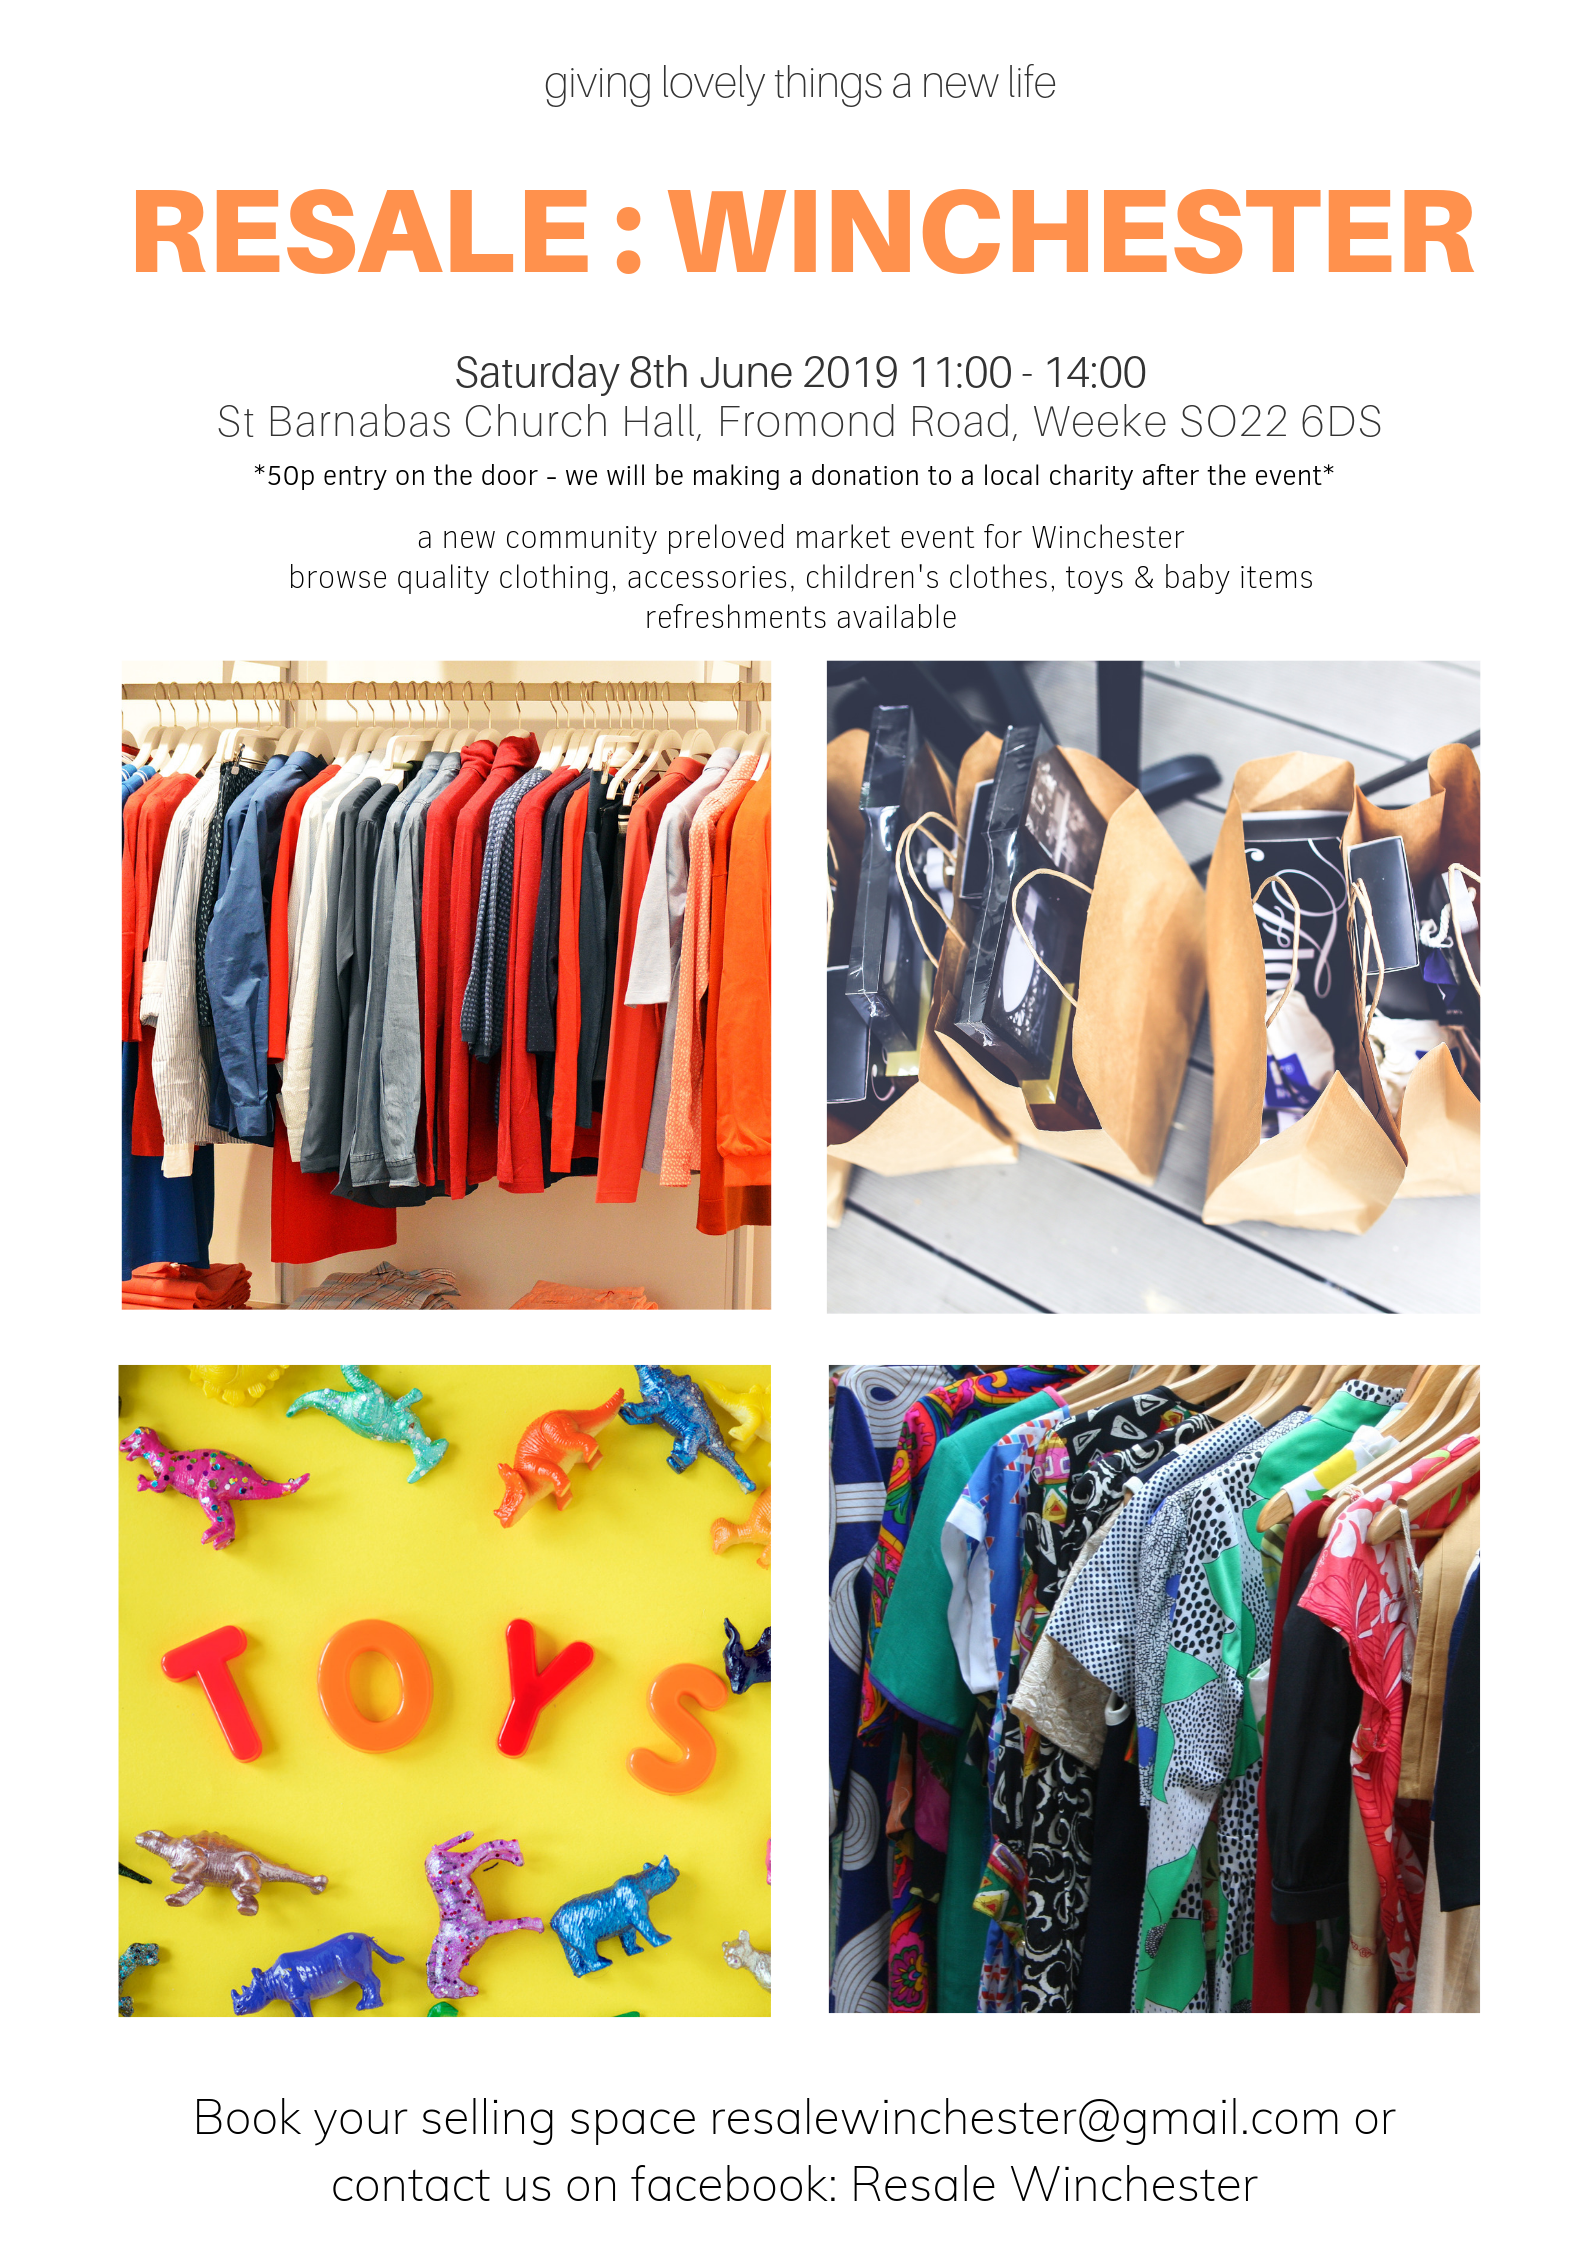 Resale Winchester: Clothes & Kids